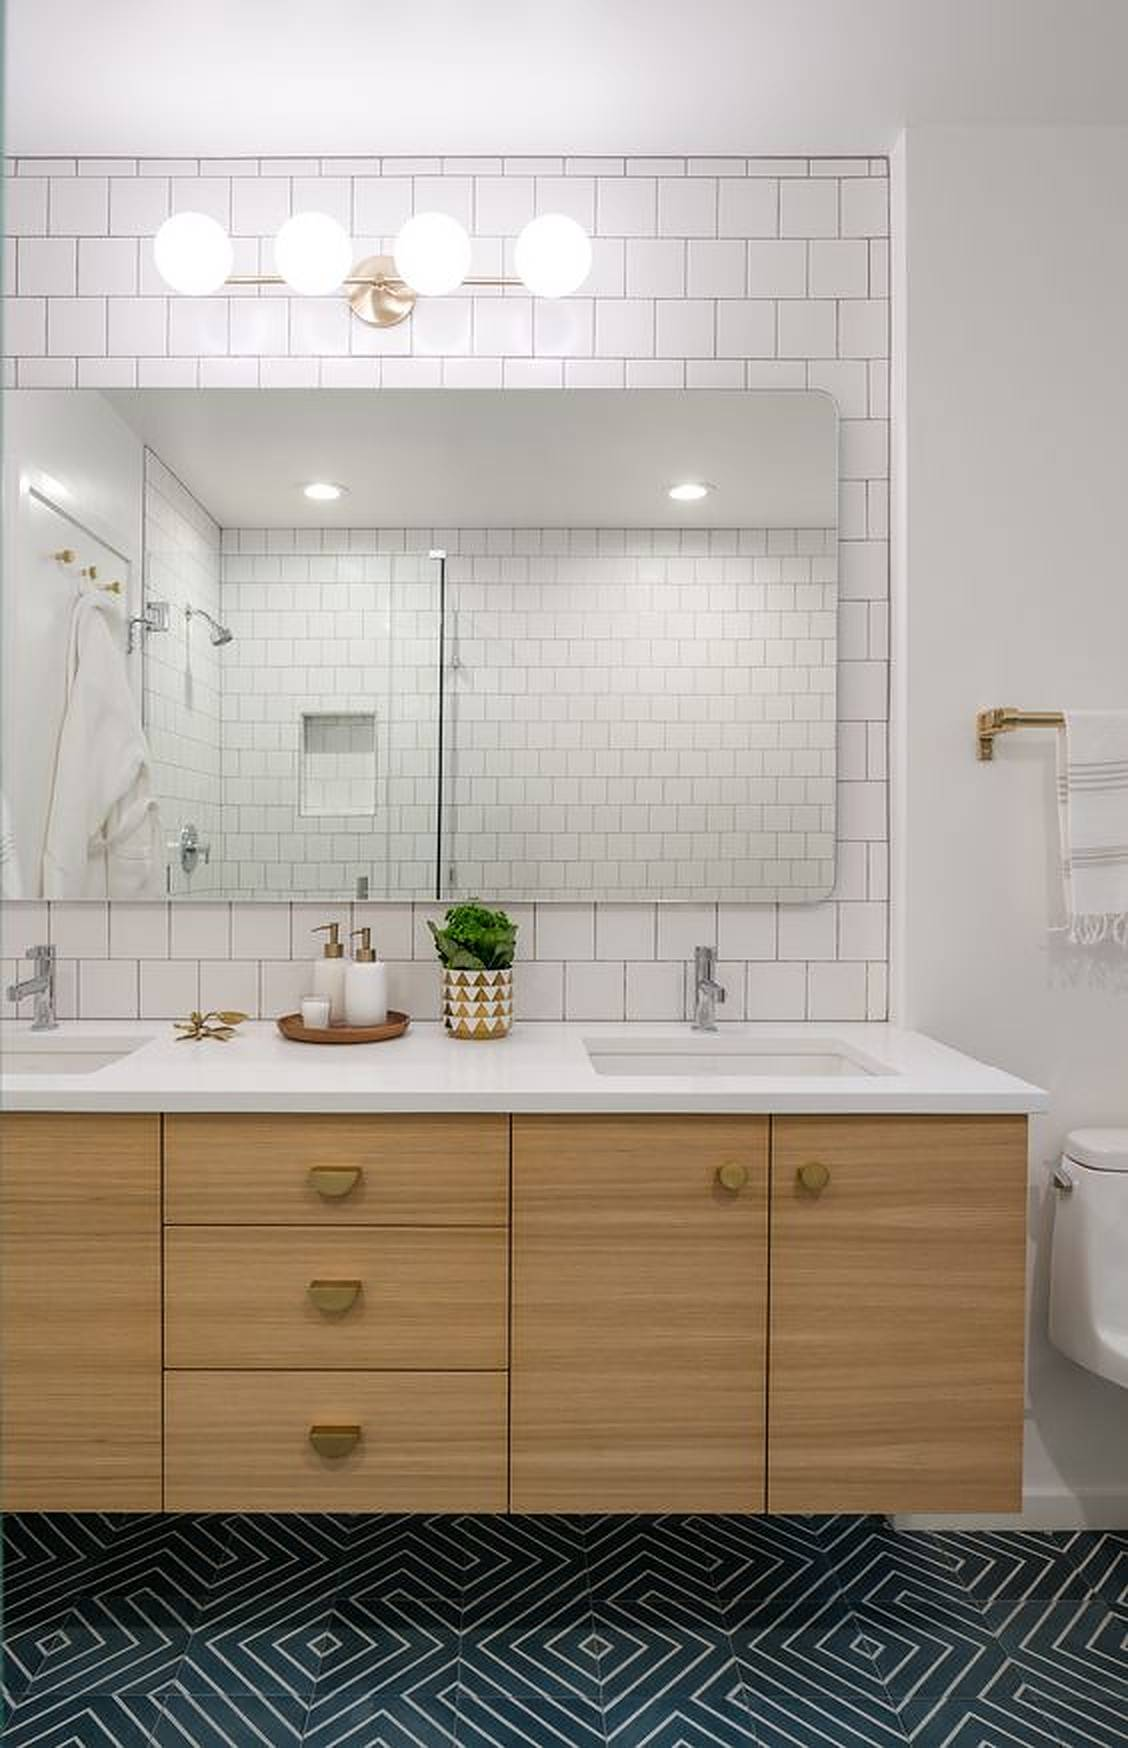 Double bathroom sink with green plant